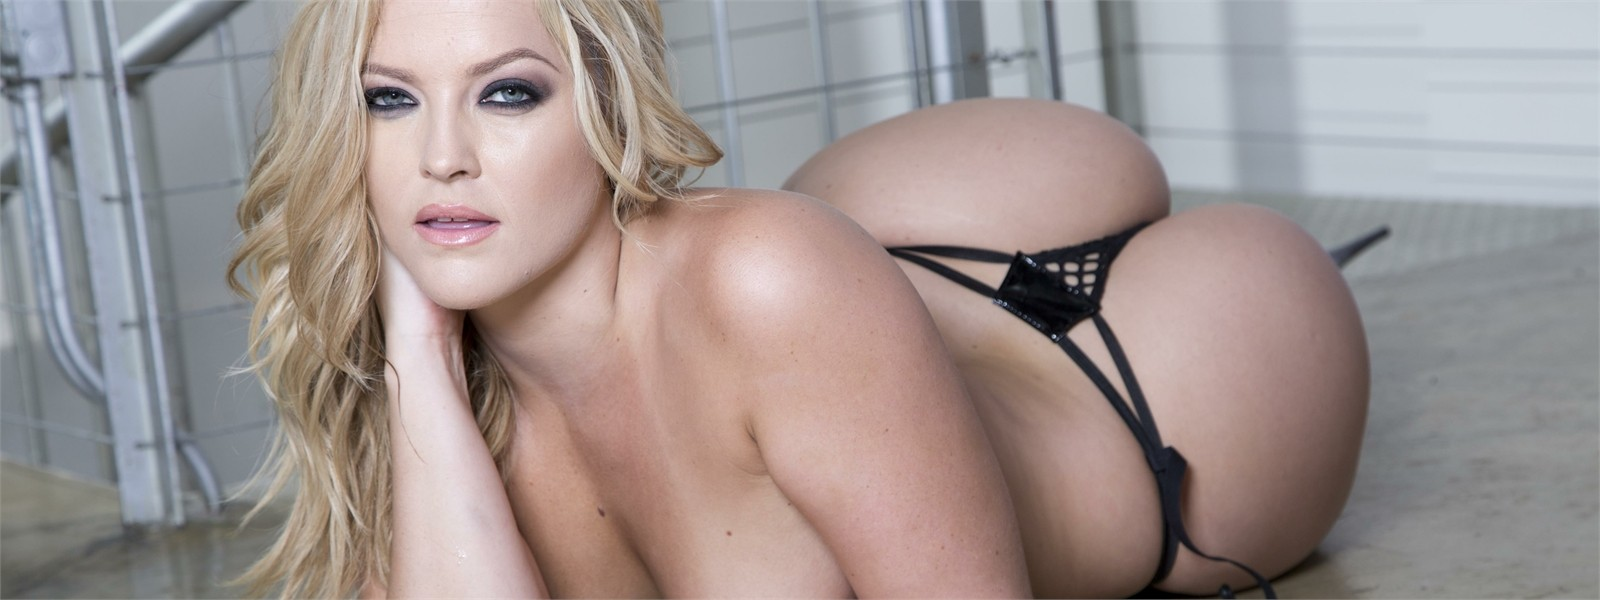 Watch porn scenes from Alexis Texas.